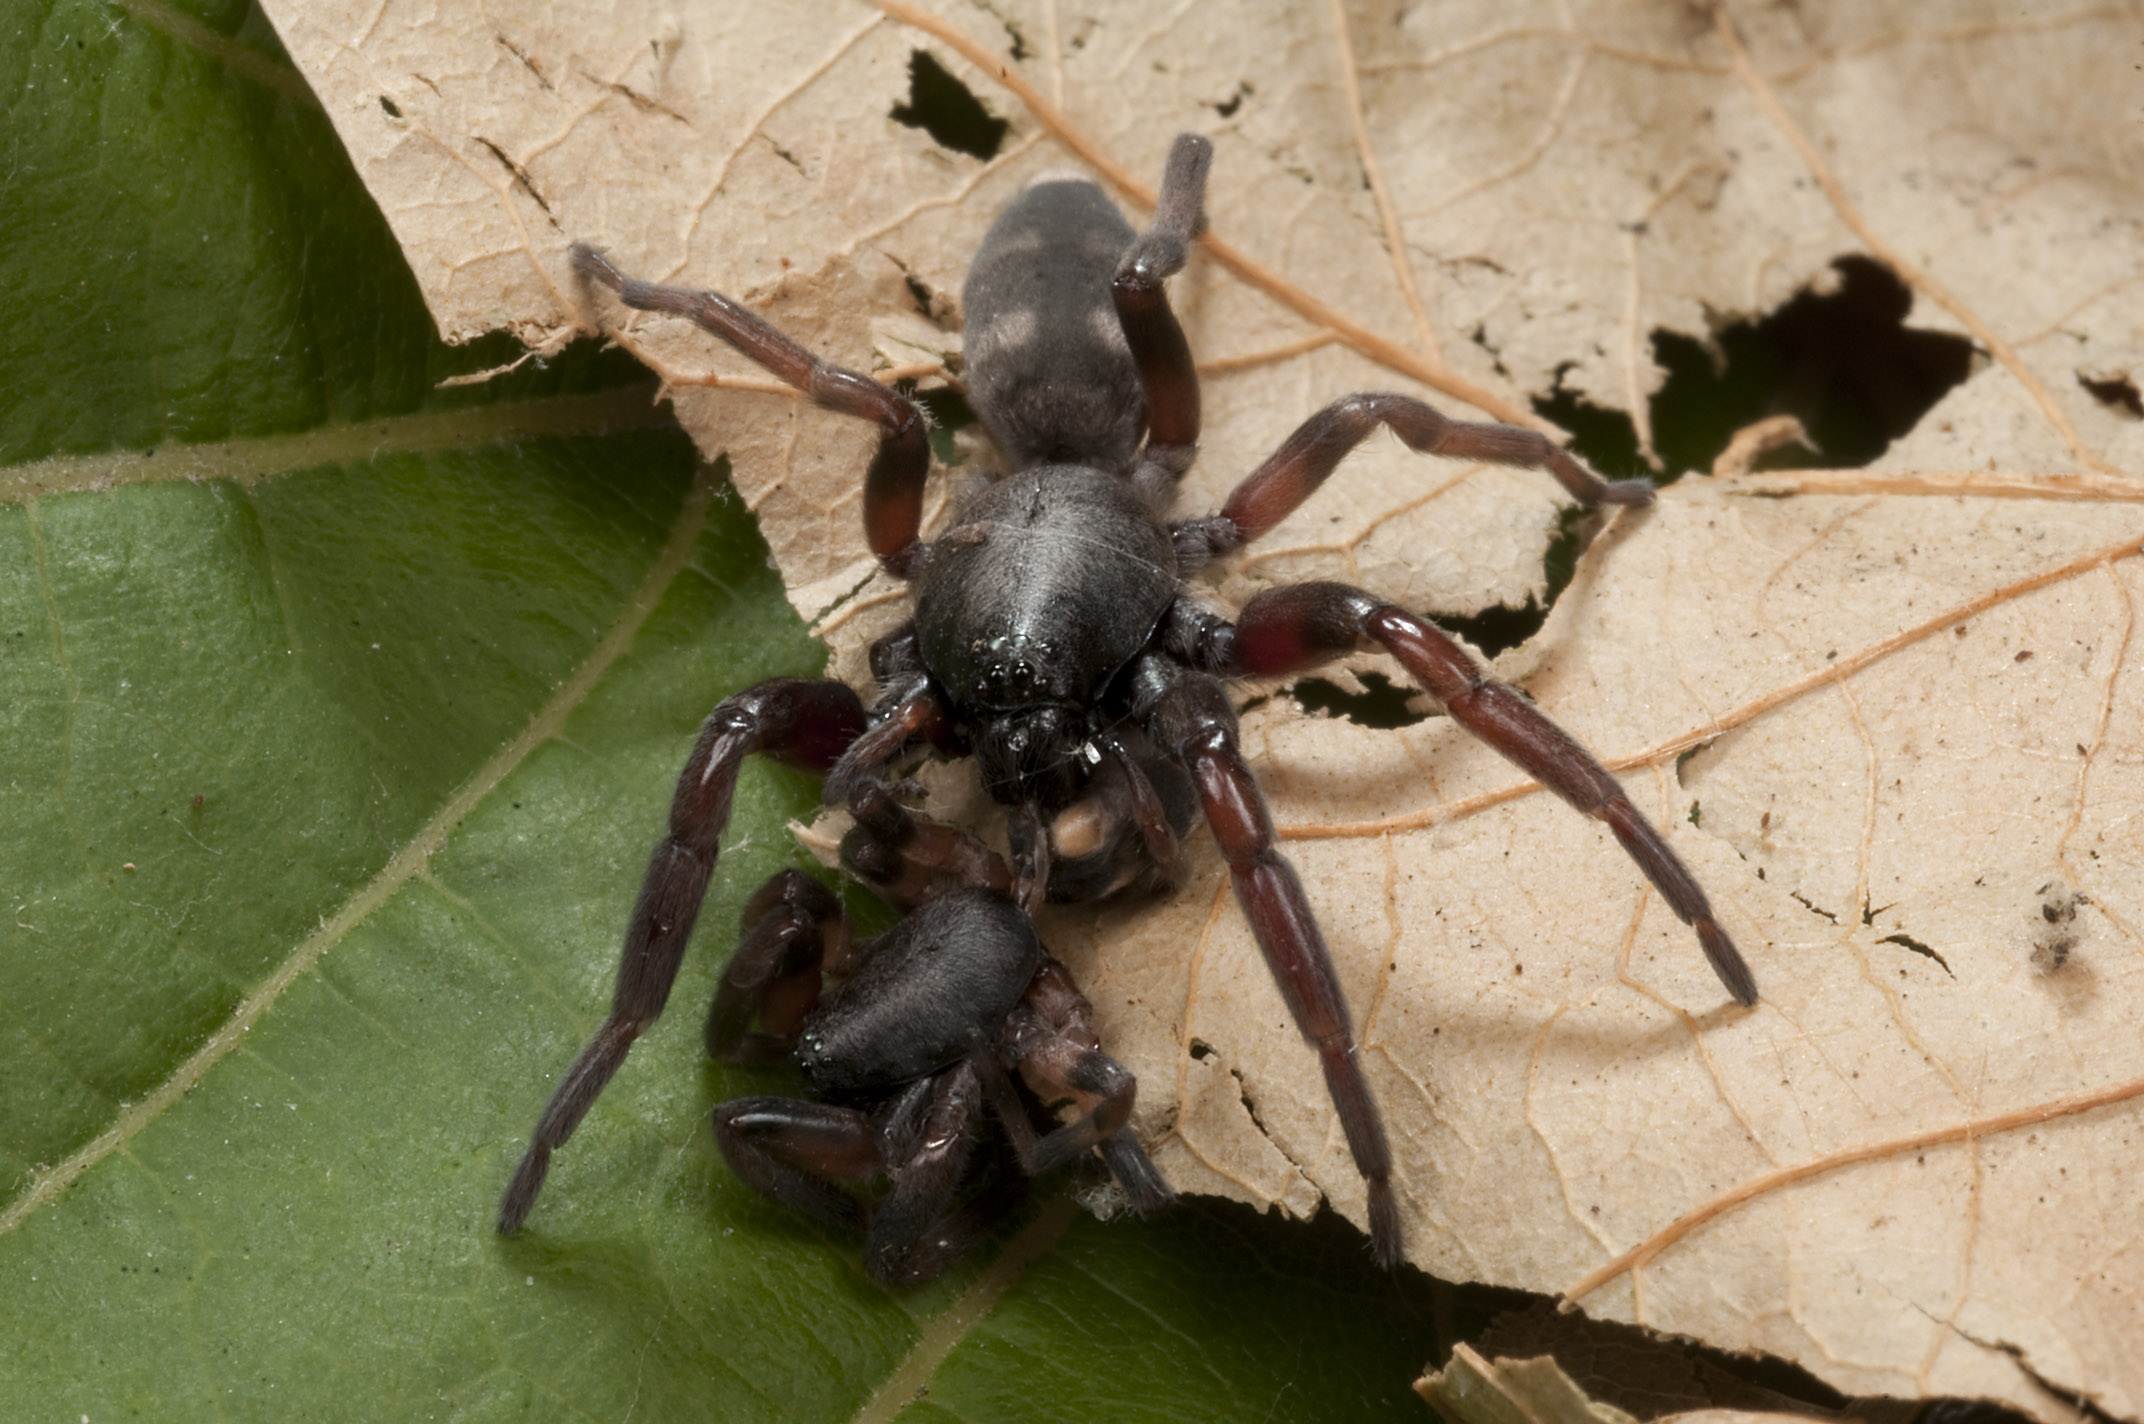 White-tailed_Spider_eating_White-tailed_Spider_20110105_Herne_Bay_Auckland_NZ_1.jpg